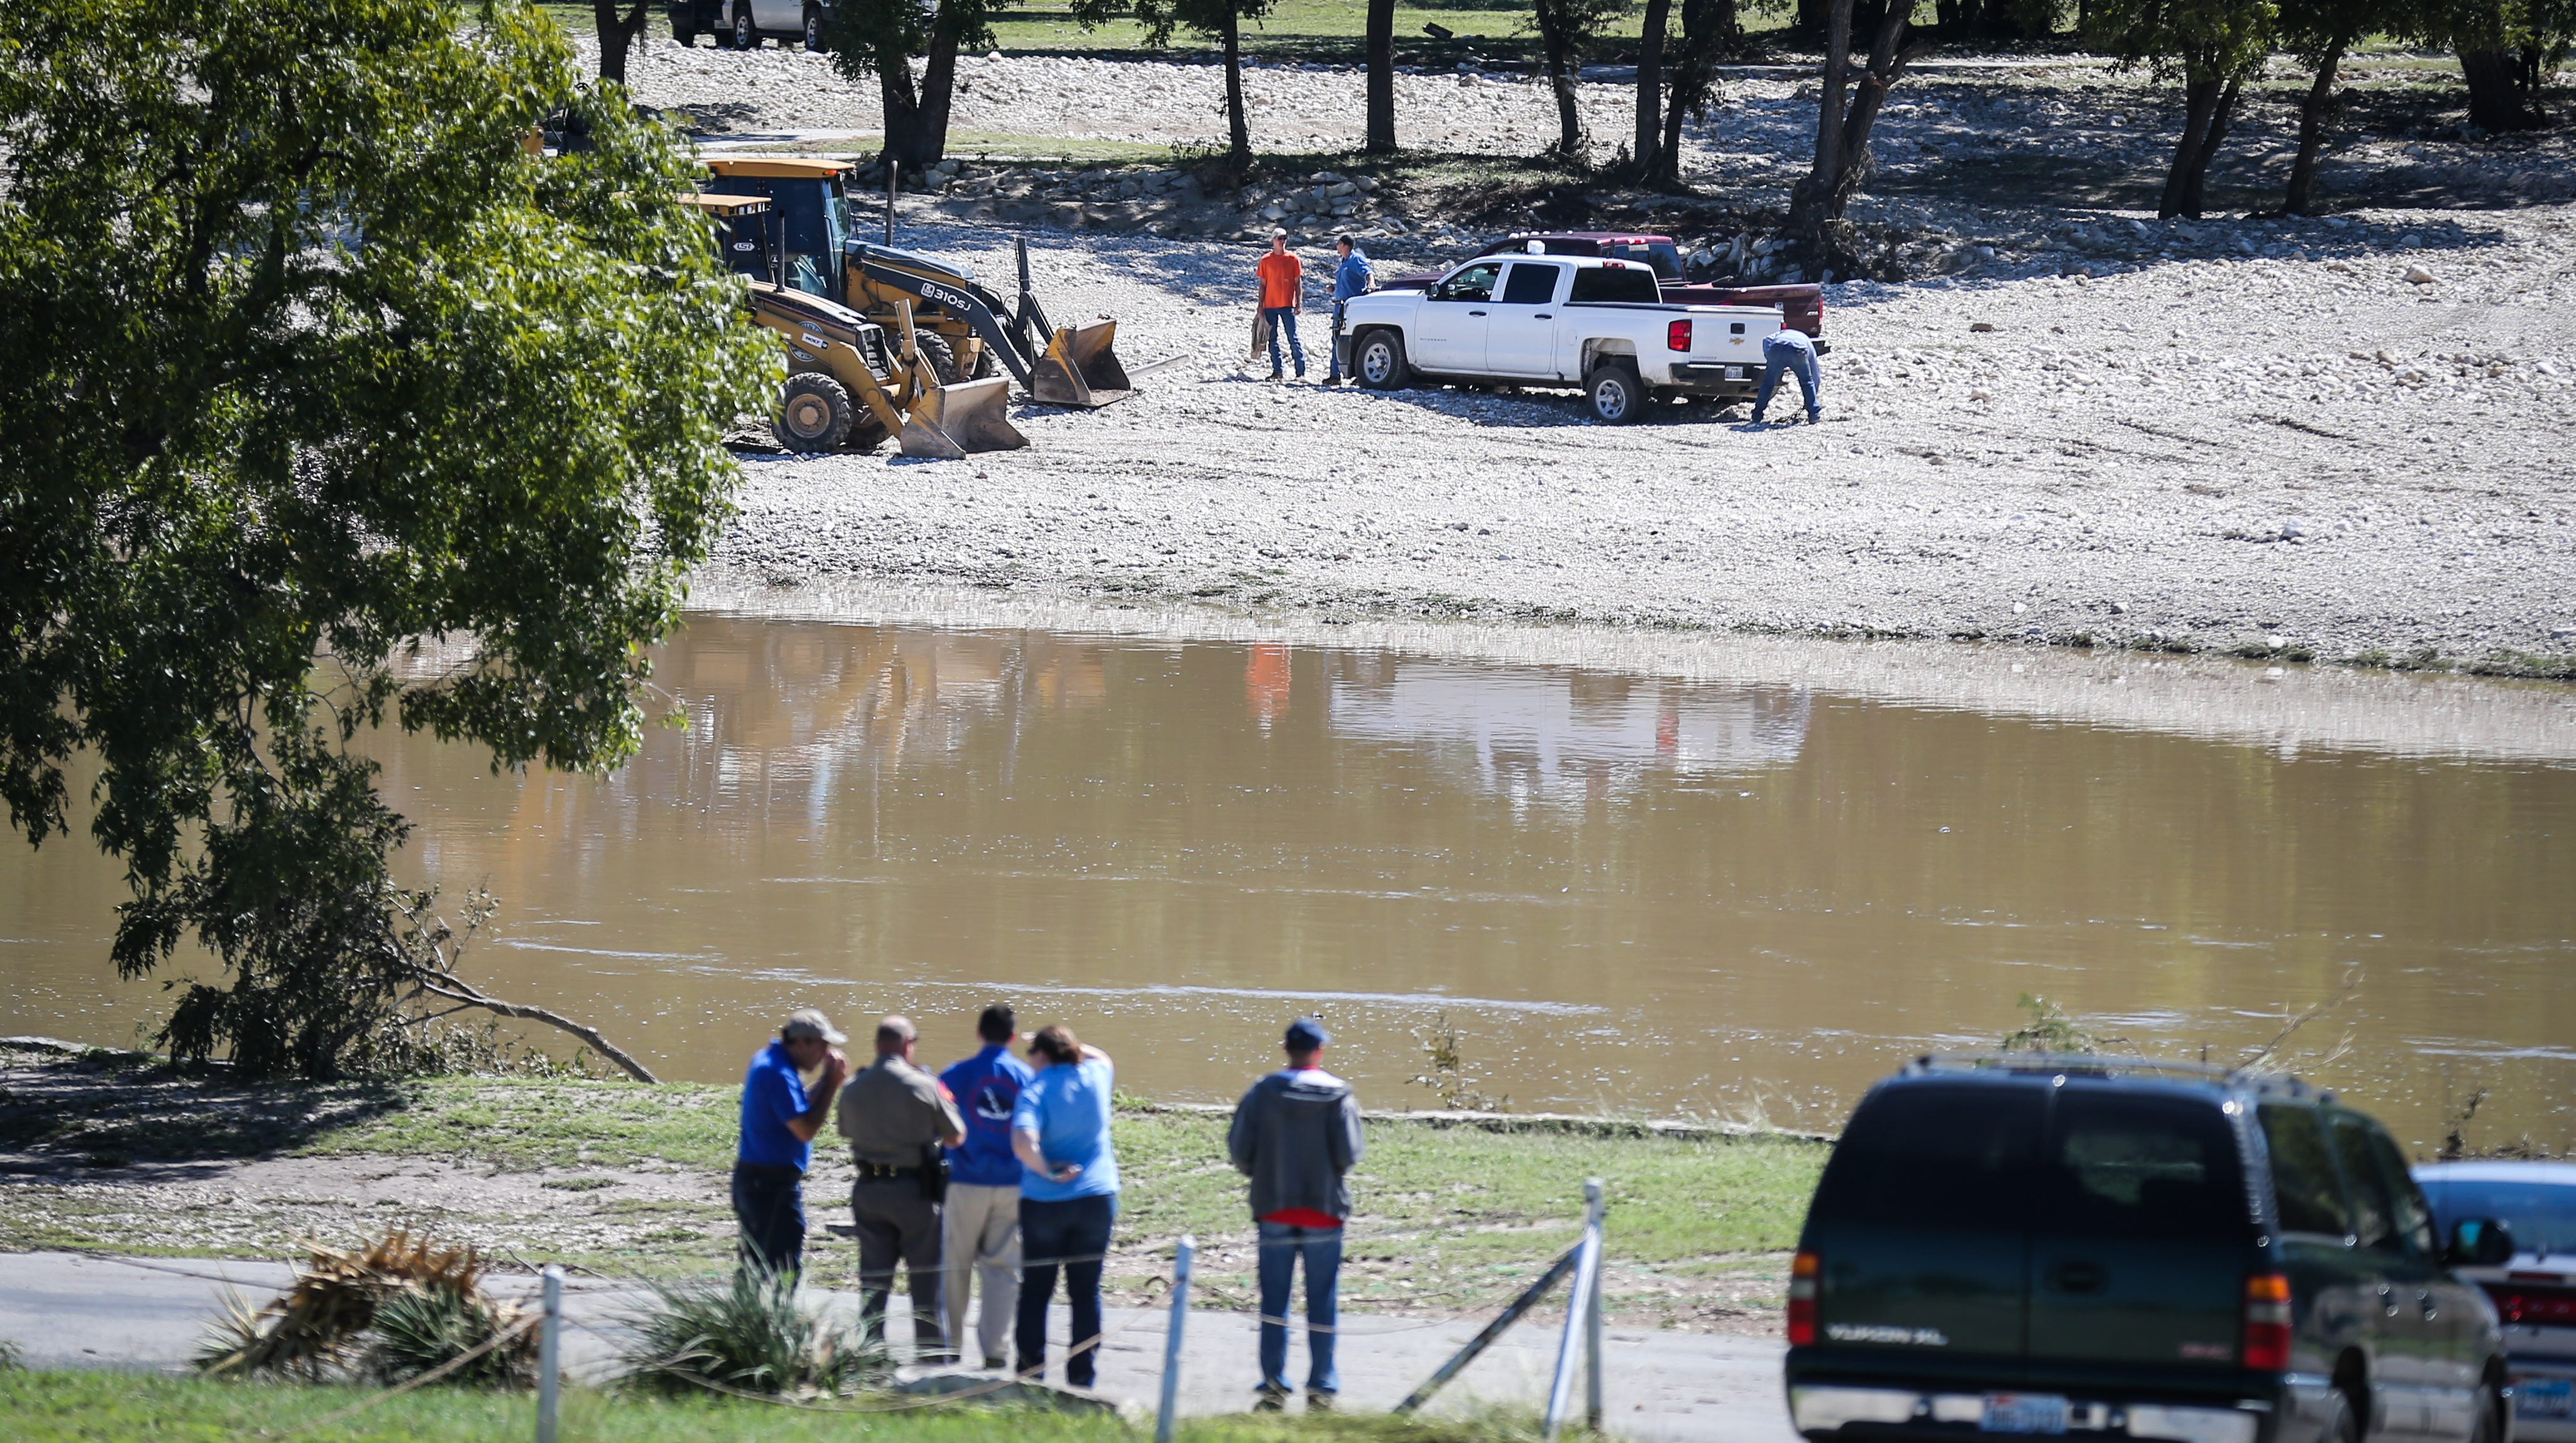 Search and rescue crew watch as backhoes dig for clues to whereabouts of the missing people after the South Llano River flooding Wednesday, Oct. 10, 2018, in Junction.